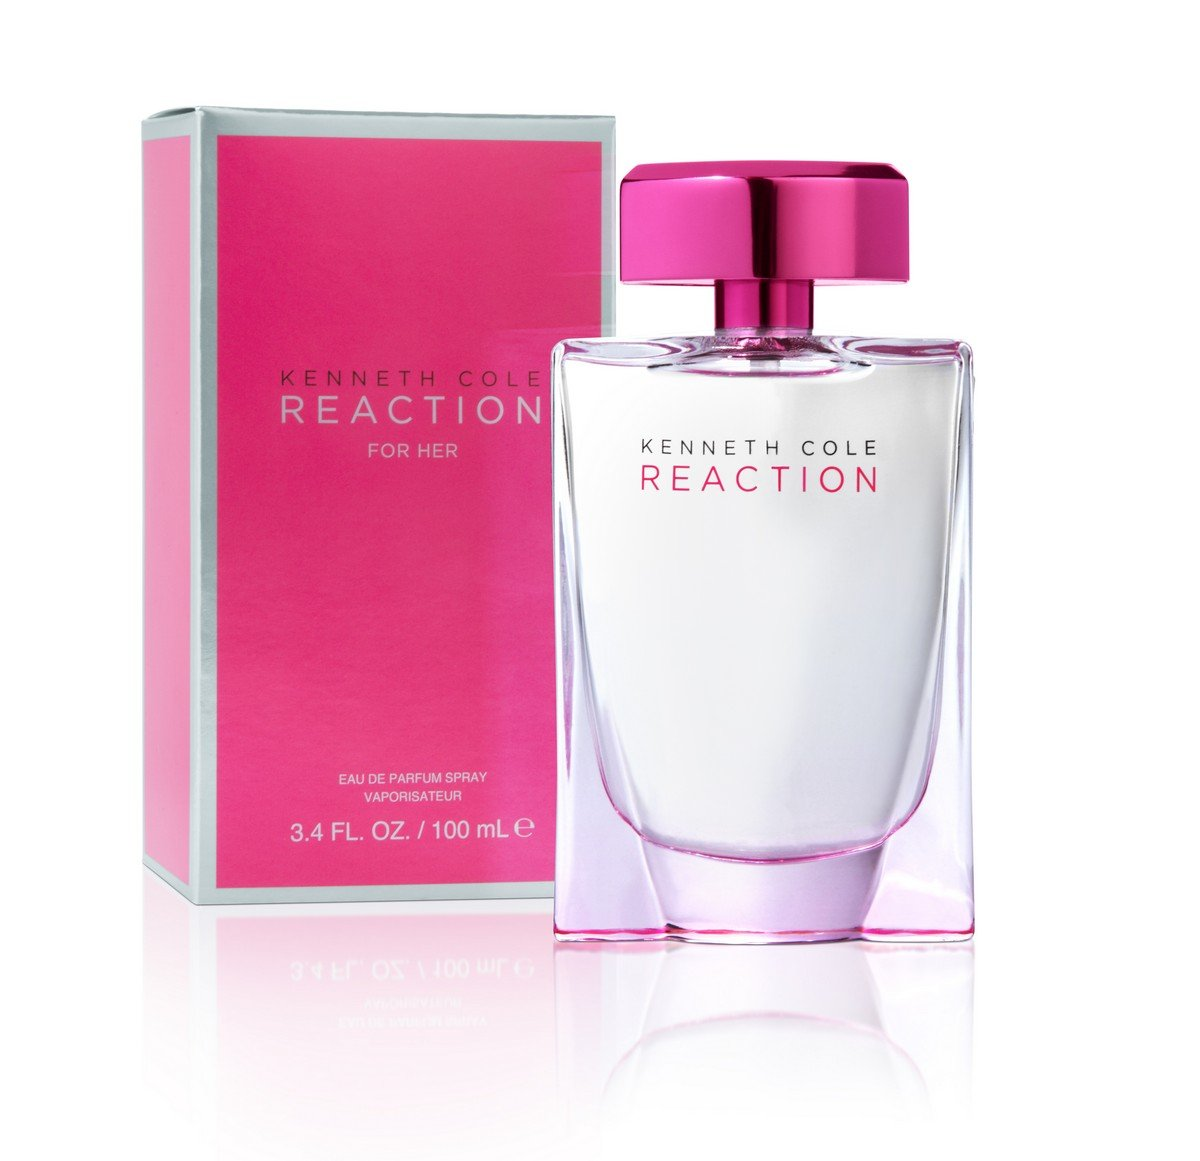 Kenneth Cole Reaction For Her, 3.4 Fl oz